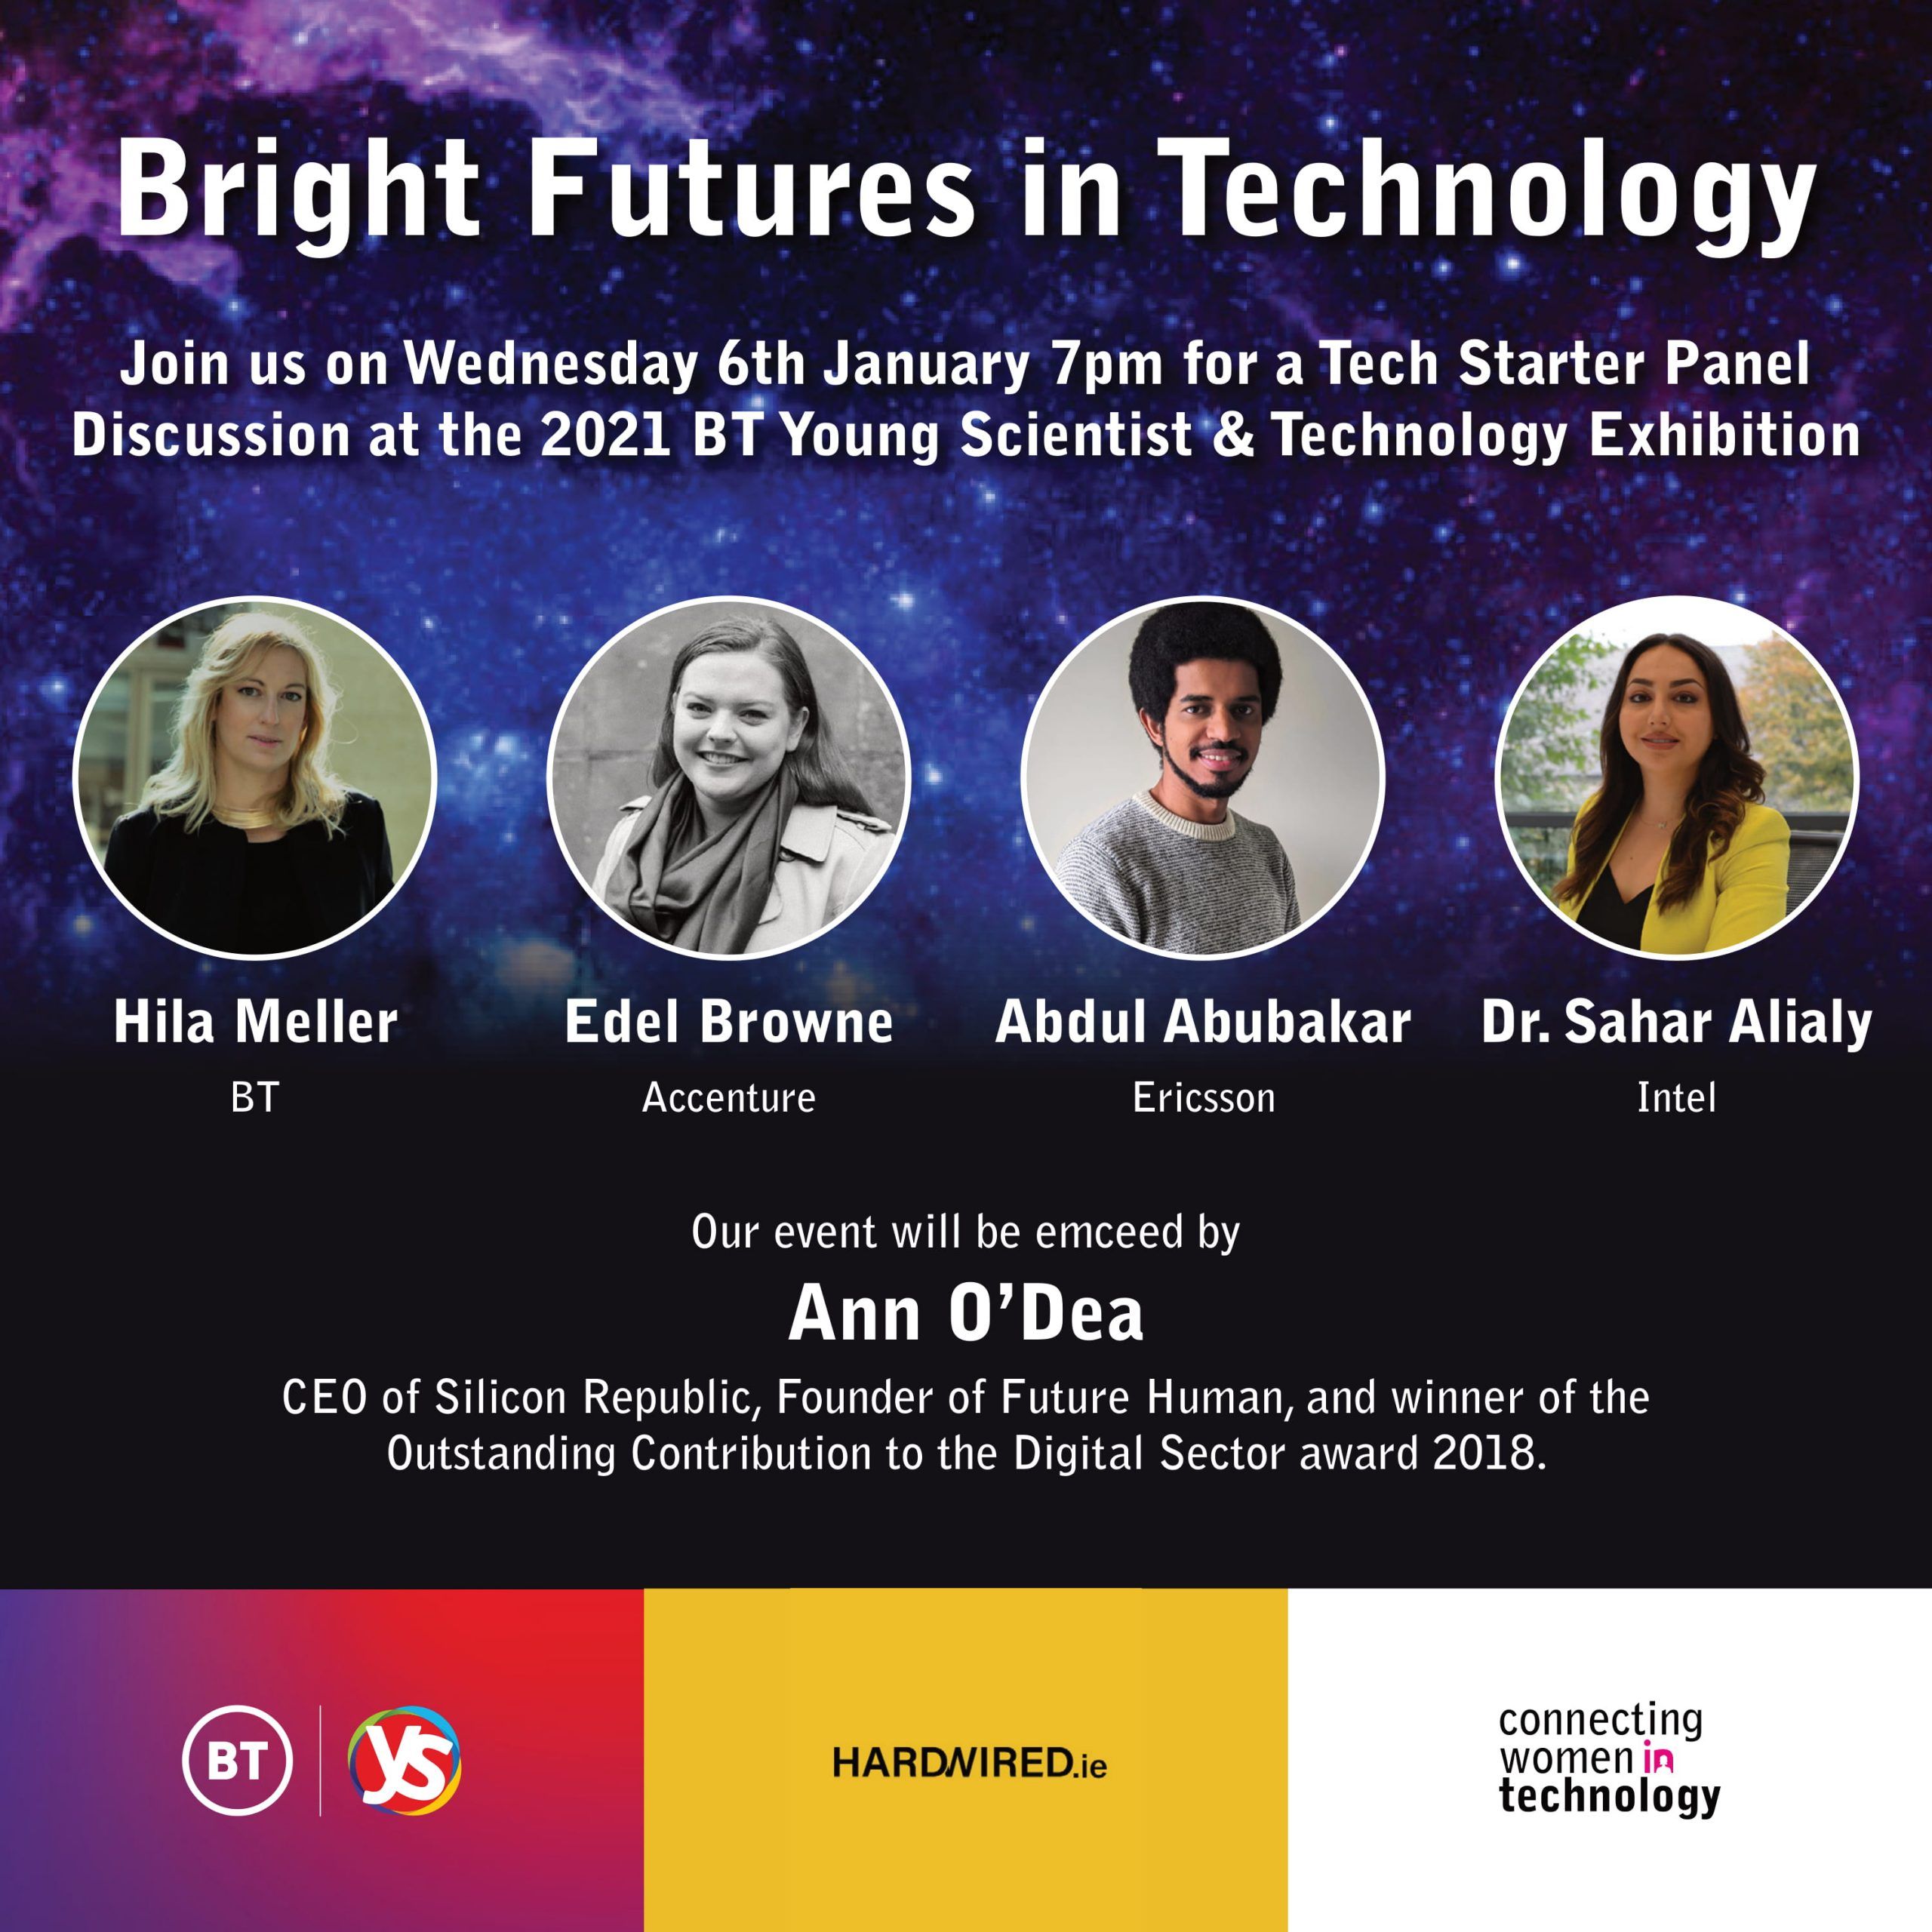 'Tech Starter: Bright Futures in Technology' at the BT Young Scientist & Technology Exhibition 2021